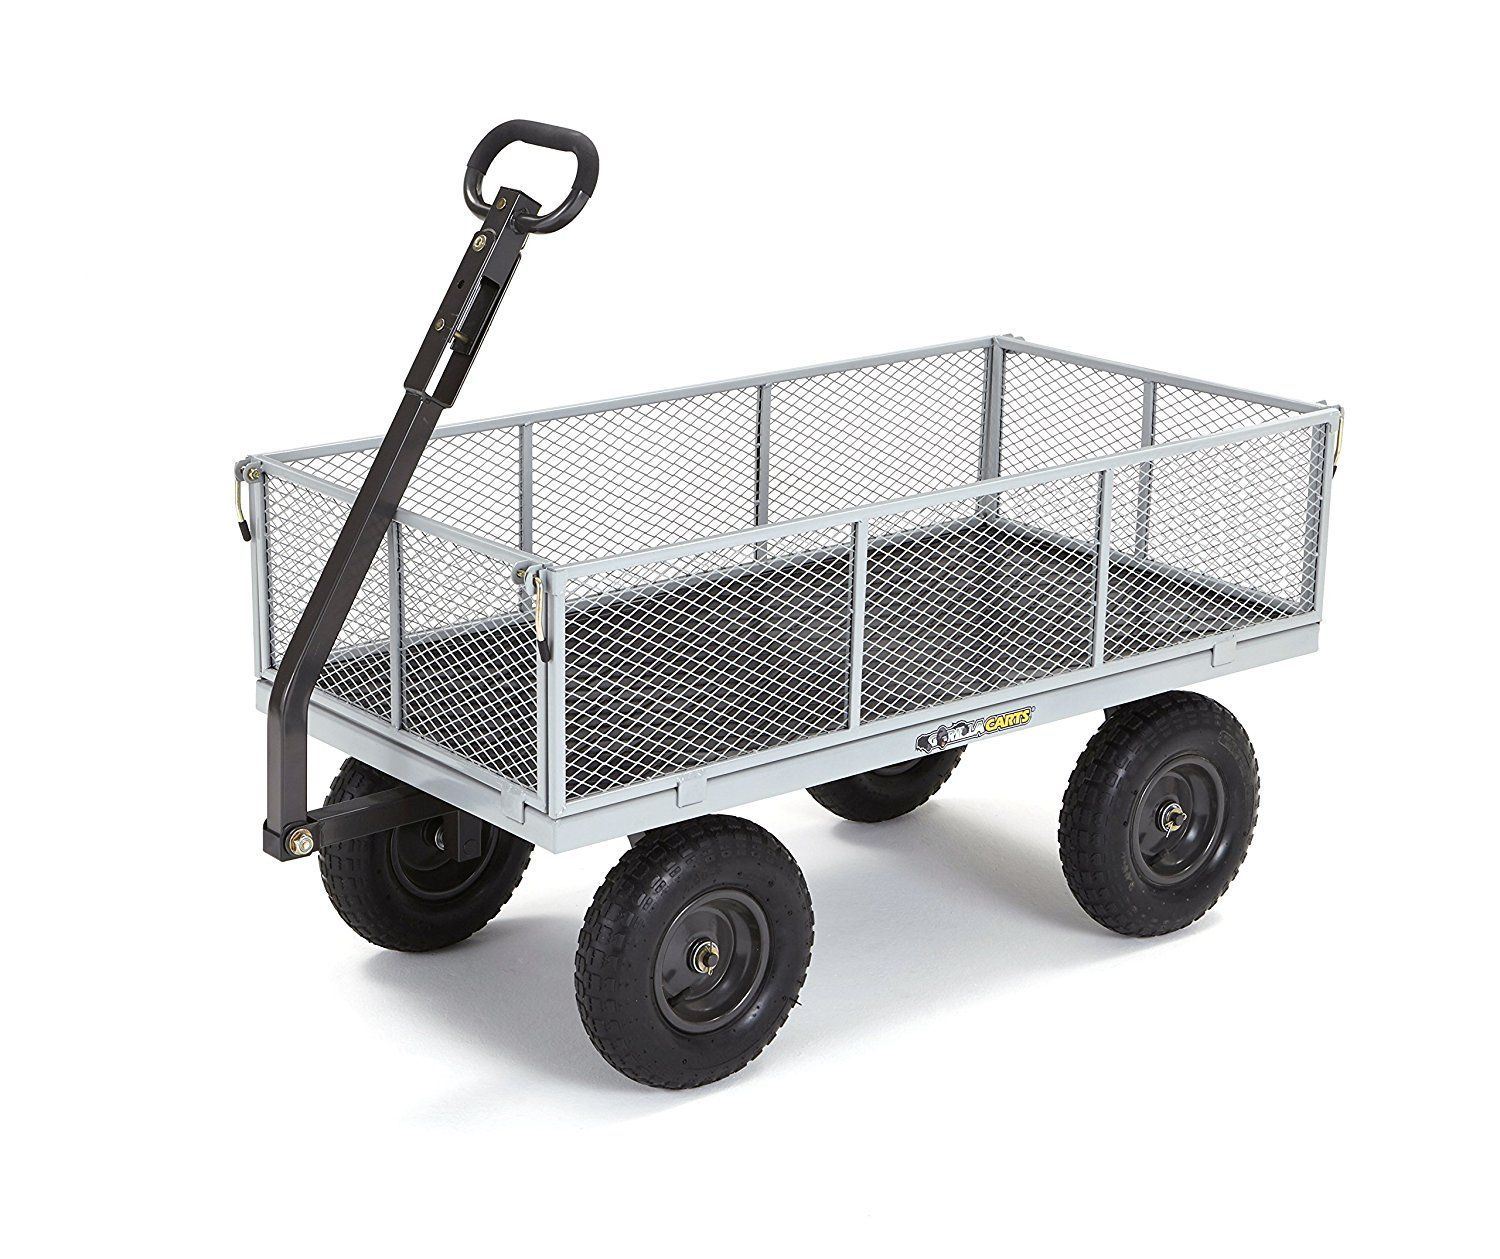 Tractor Supply Utility Cart